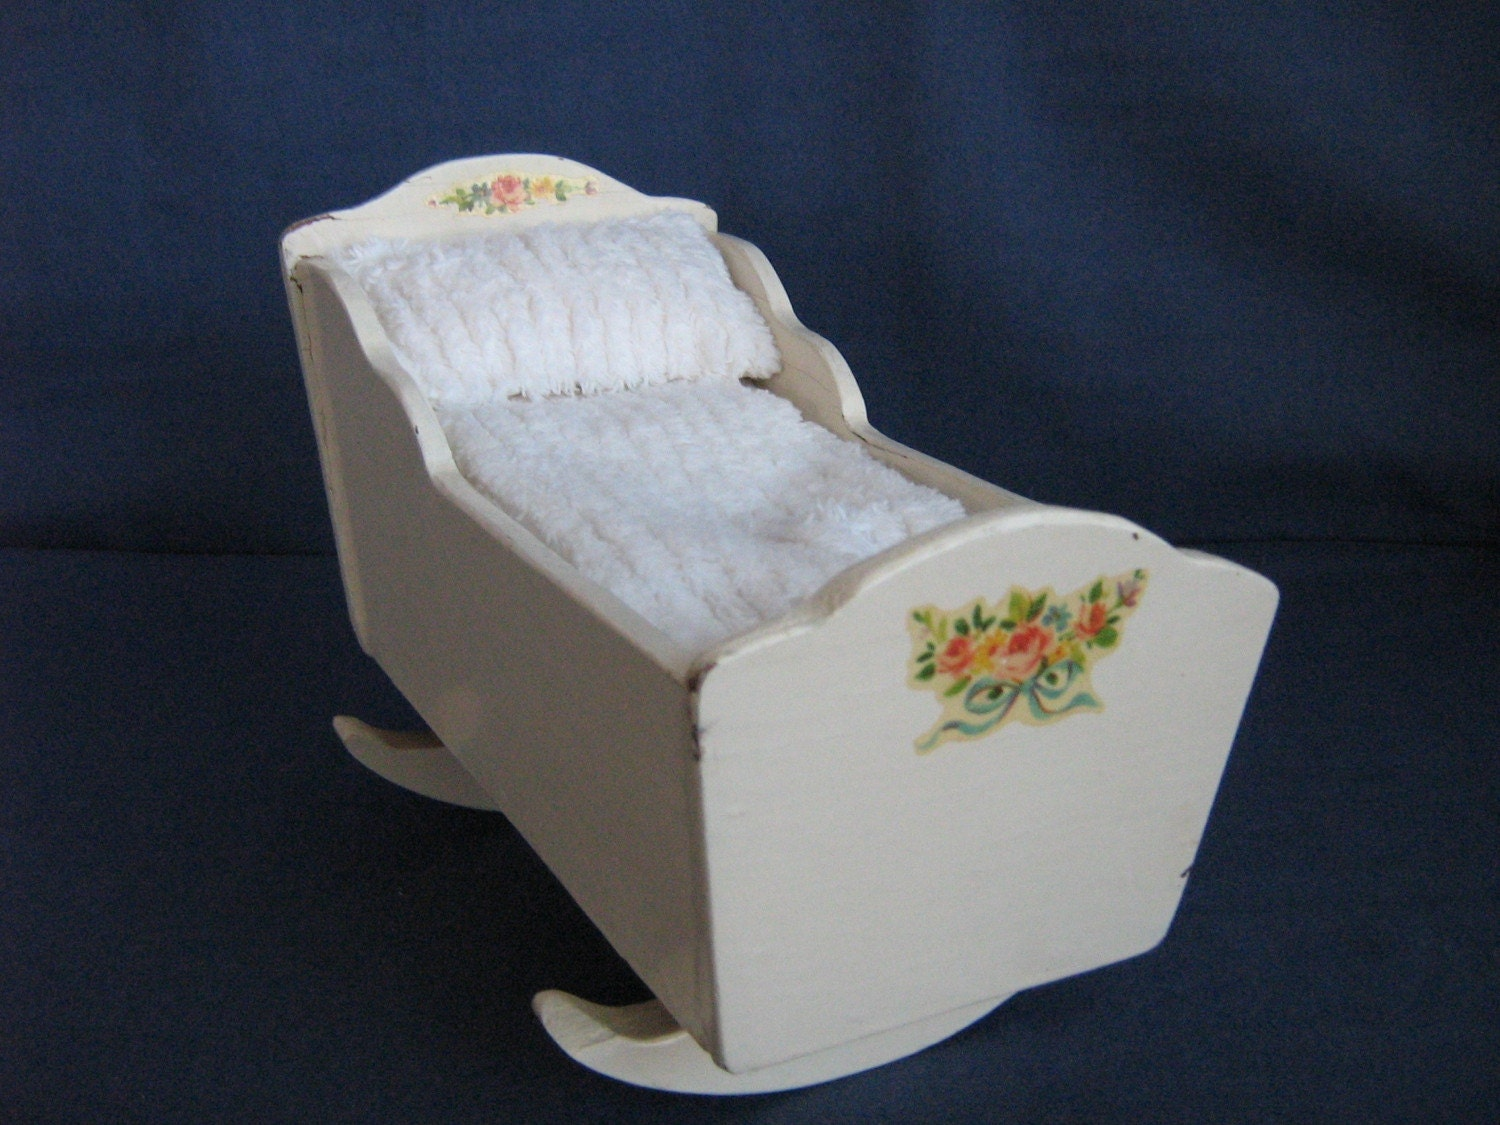 Tiny Vintage Baby Cradle For Small Dolls By Thetoybox On Etsy